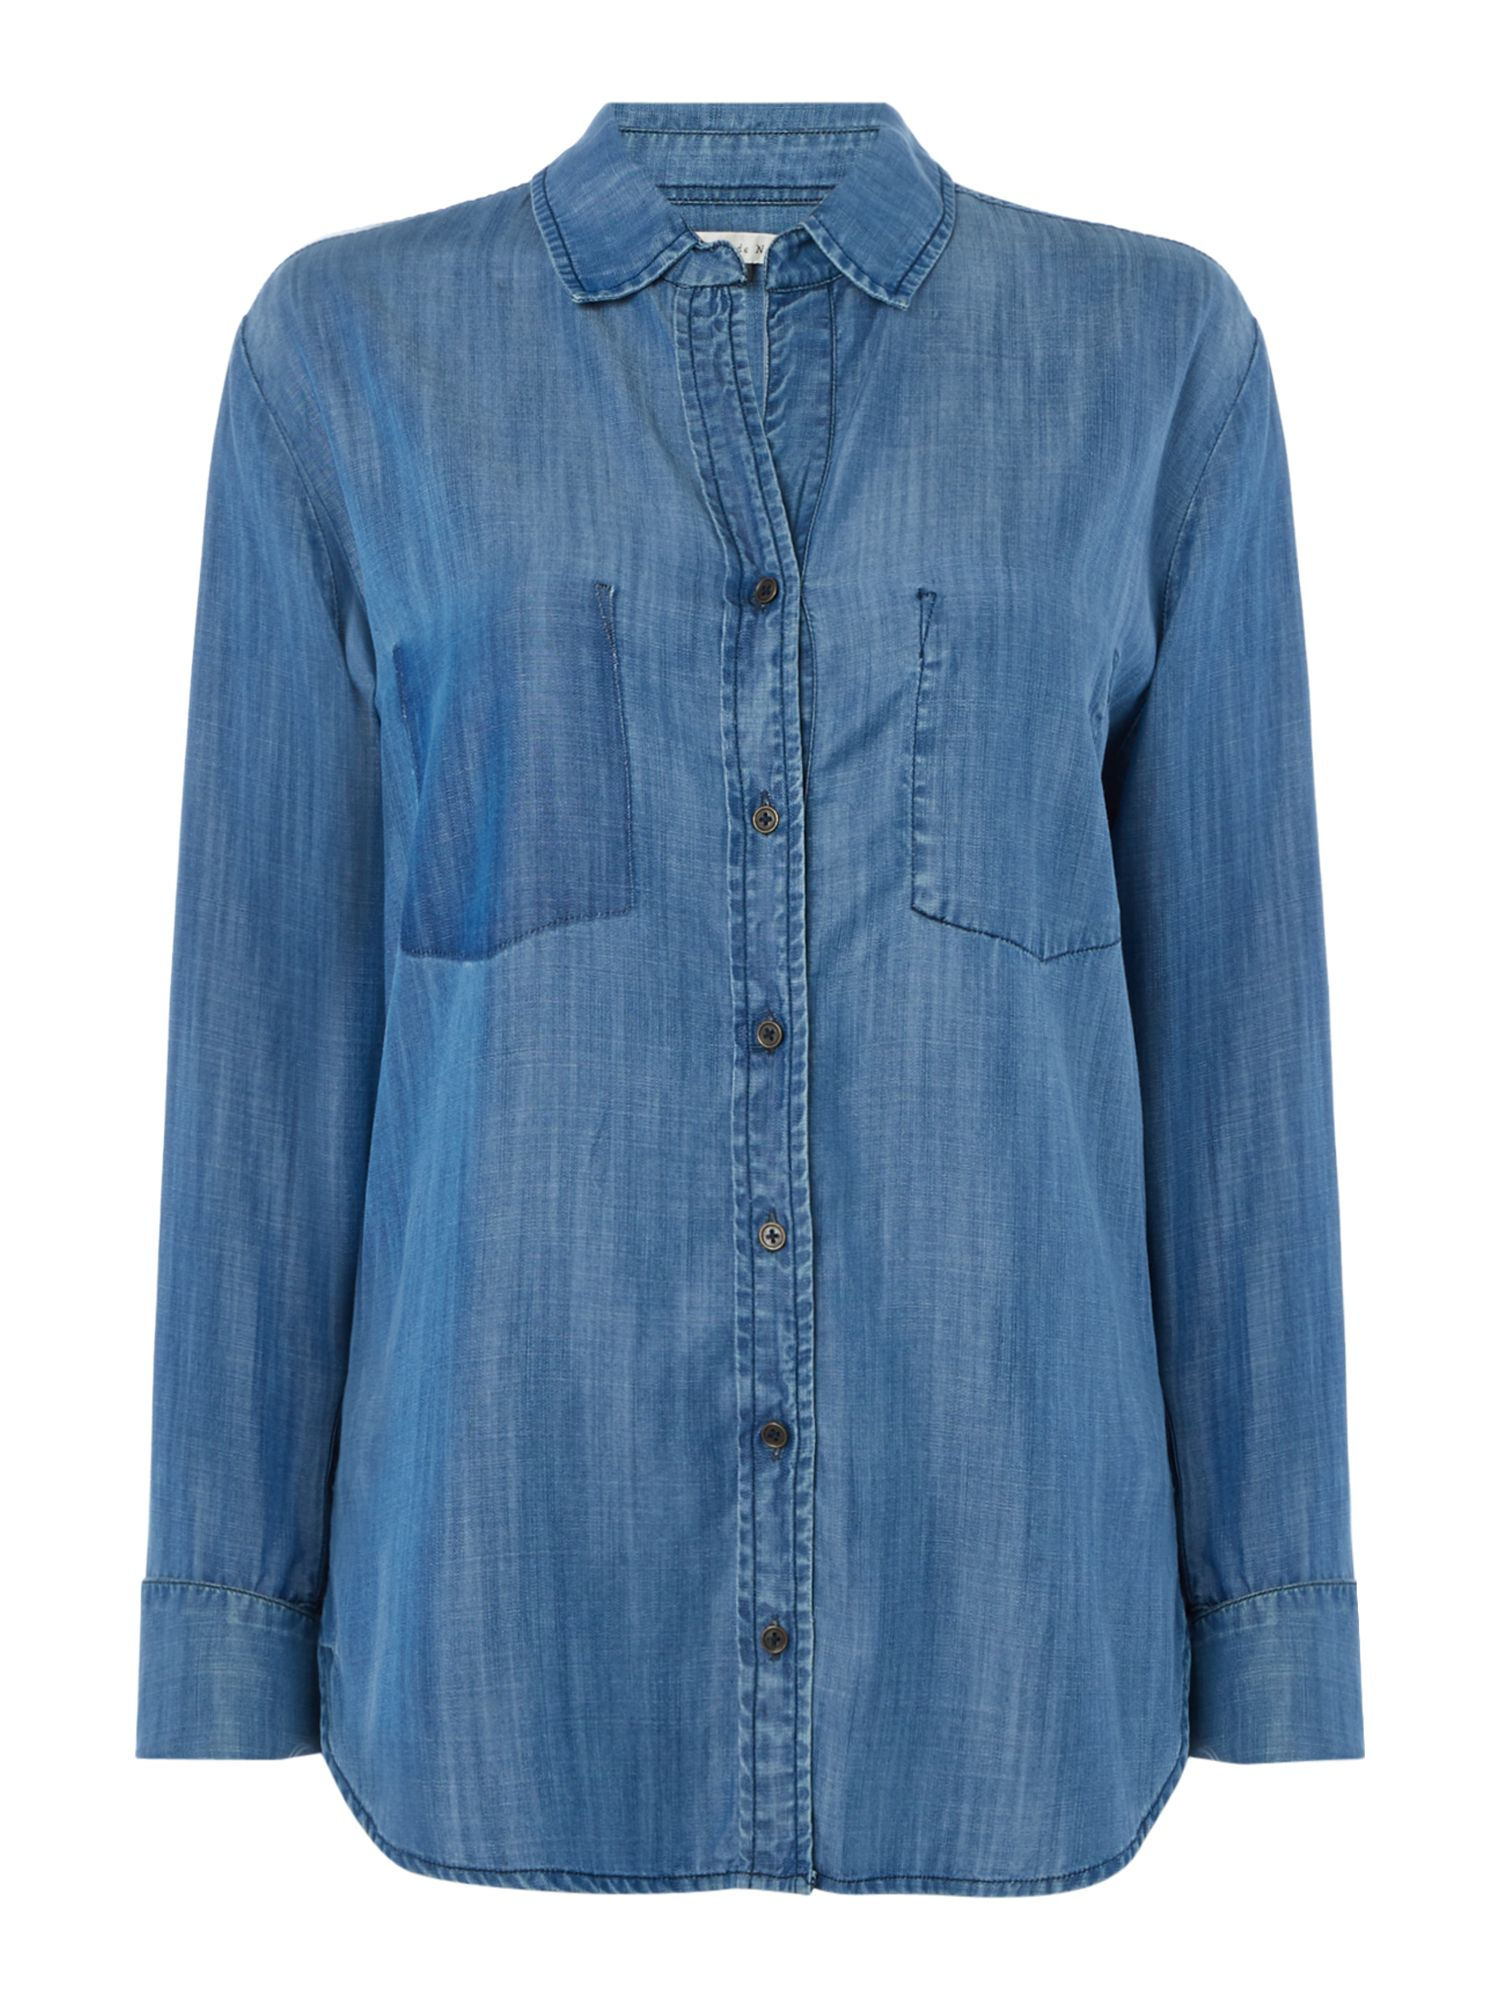 Maison De Nimes Painters Denim Shirt, Blue